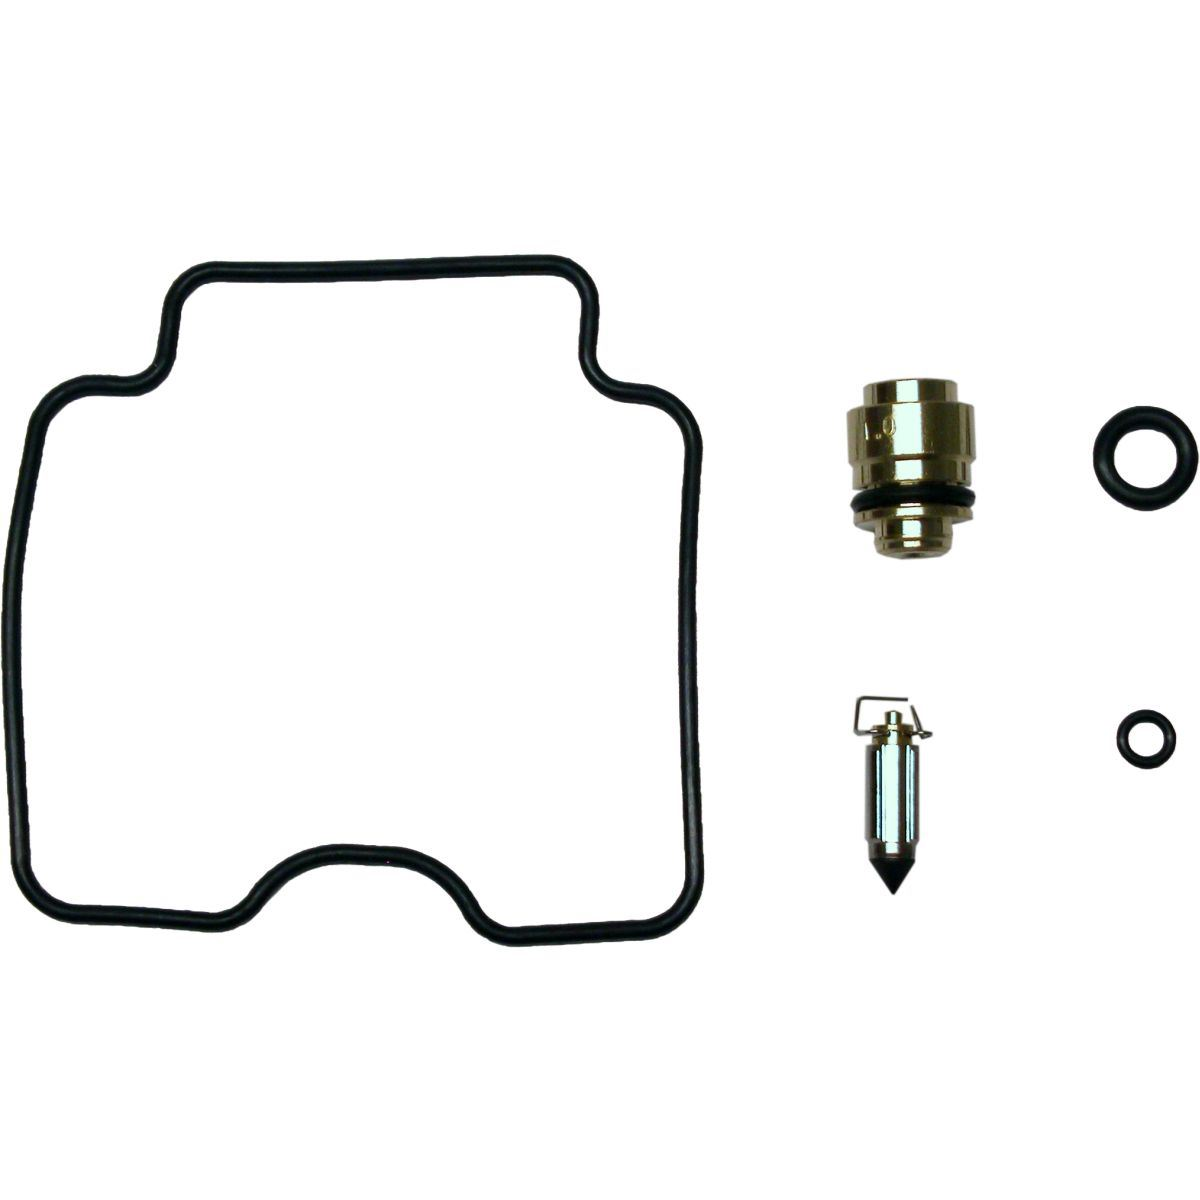 AW Motorcycle Parts. Carburettor Repair Kit Yamaha FZS600